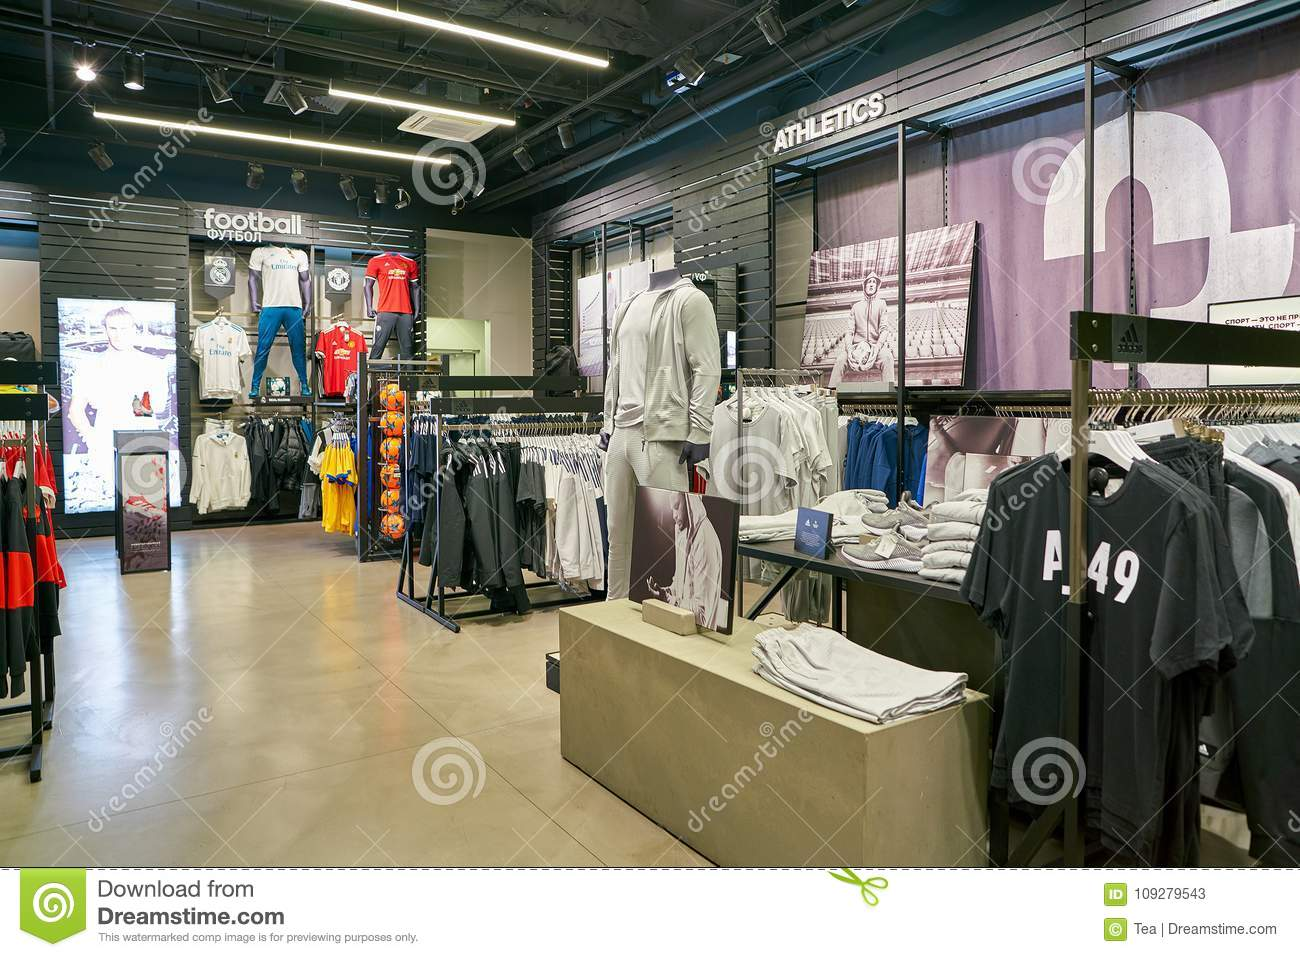 57a73498 SAINT PETERSBURG, RUSSIA - CIRCA AUGUST, 2017: inside Adidas store. Adidas  AG is a German multinational corporation, that designs and manufactures  shoes, ...